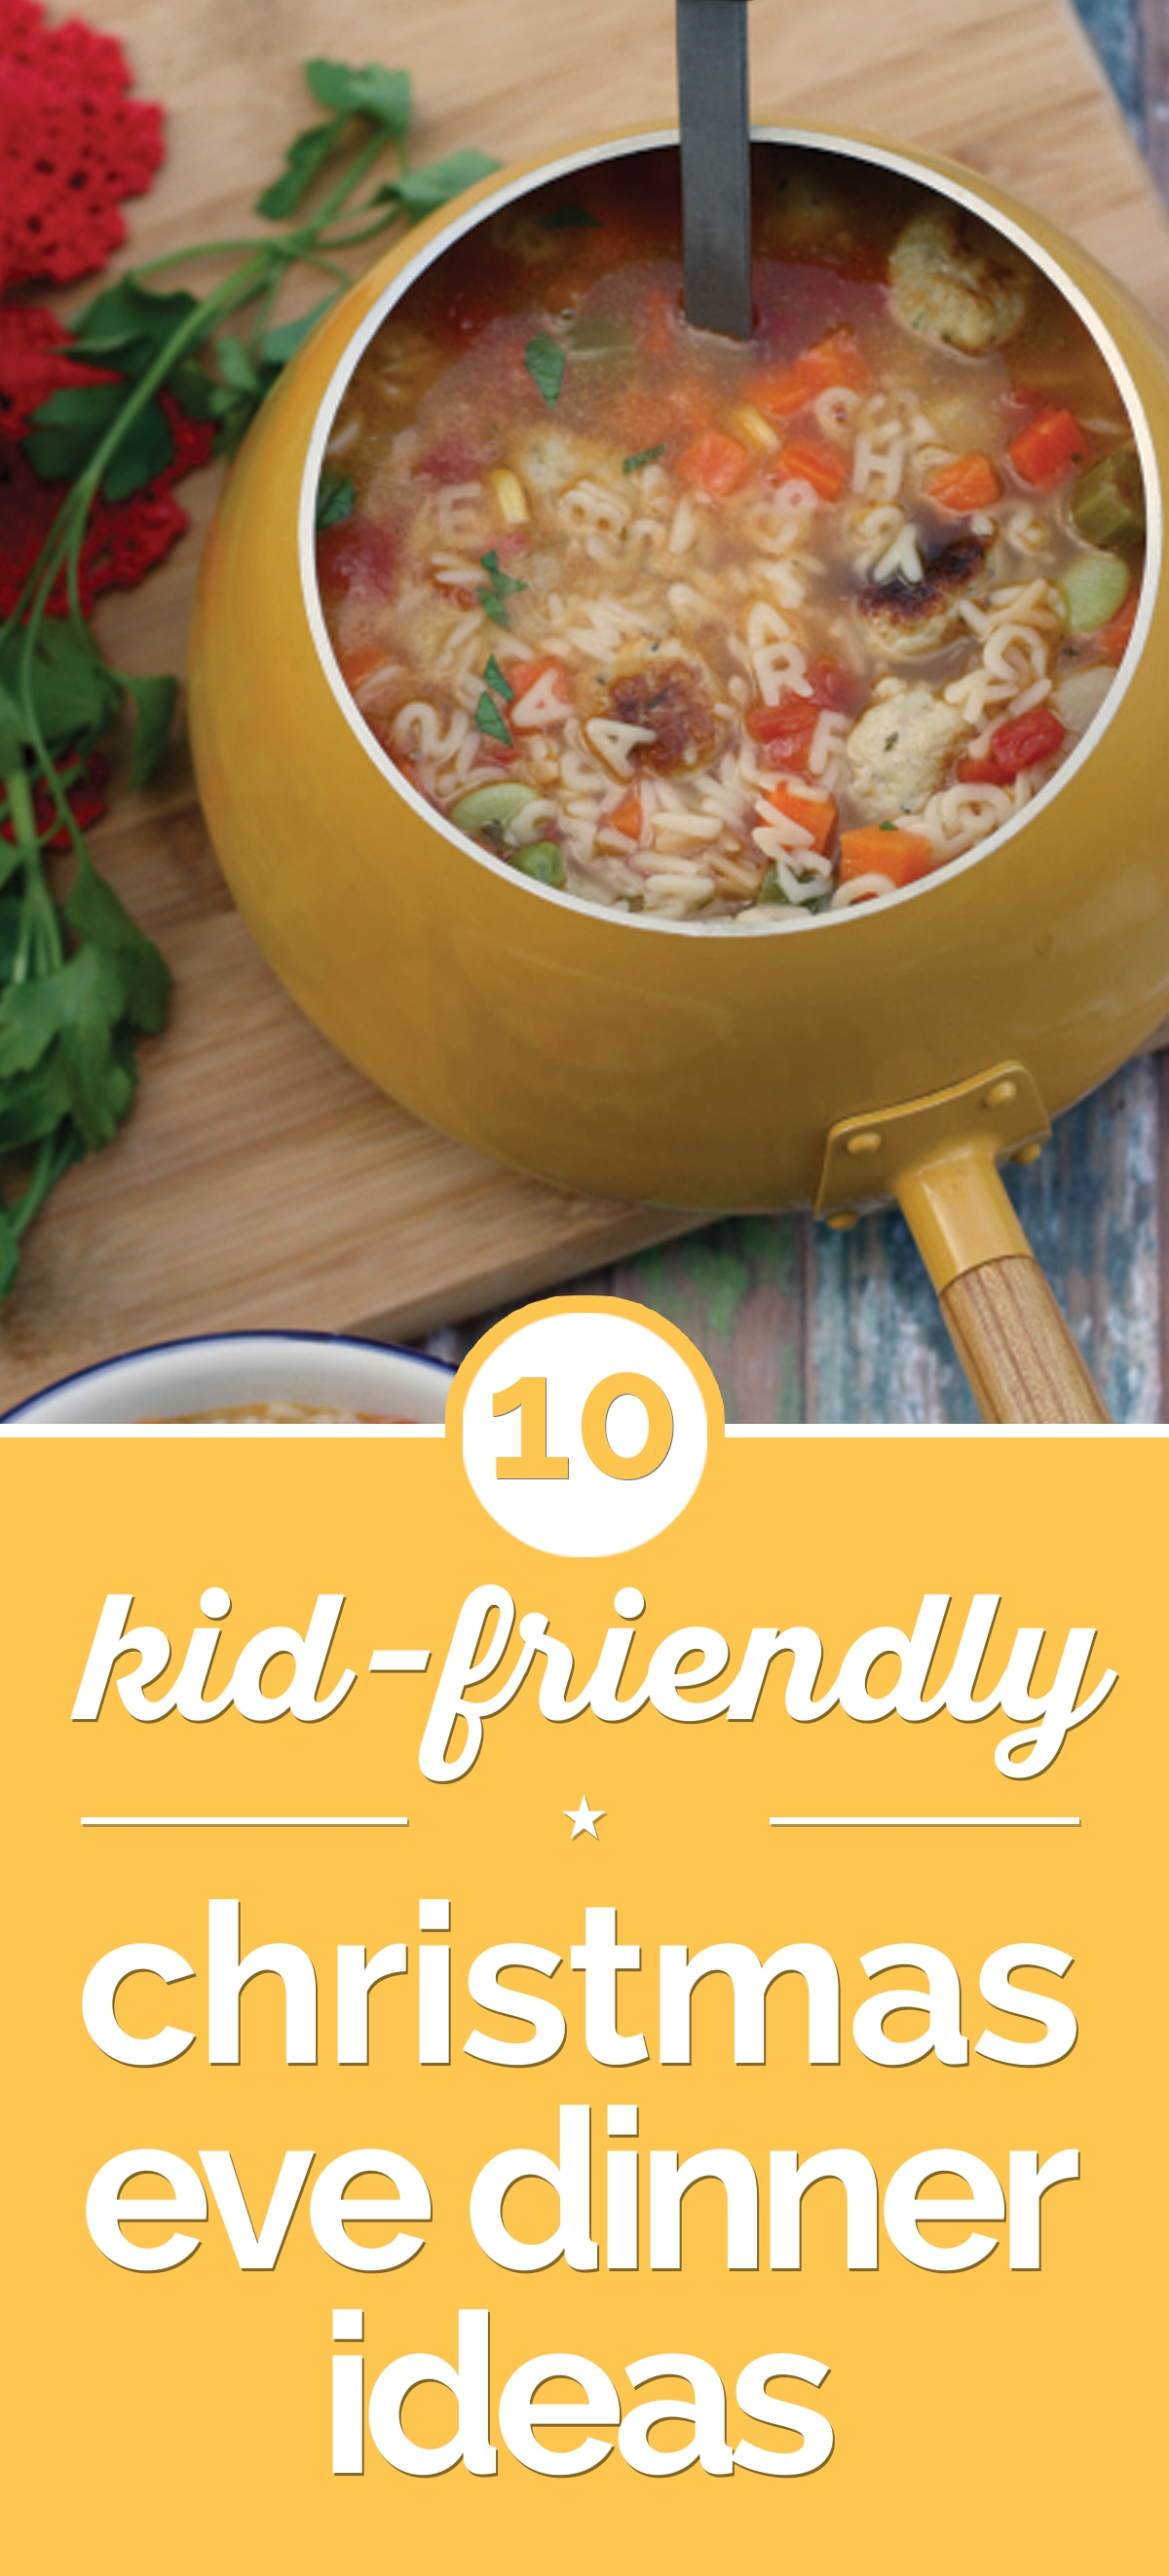 10 kid friendly christmas eve dinner ideas thegoodstuff